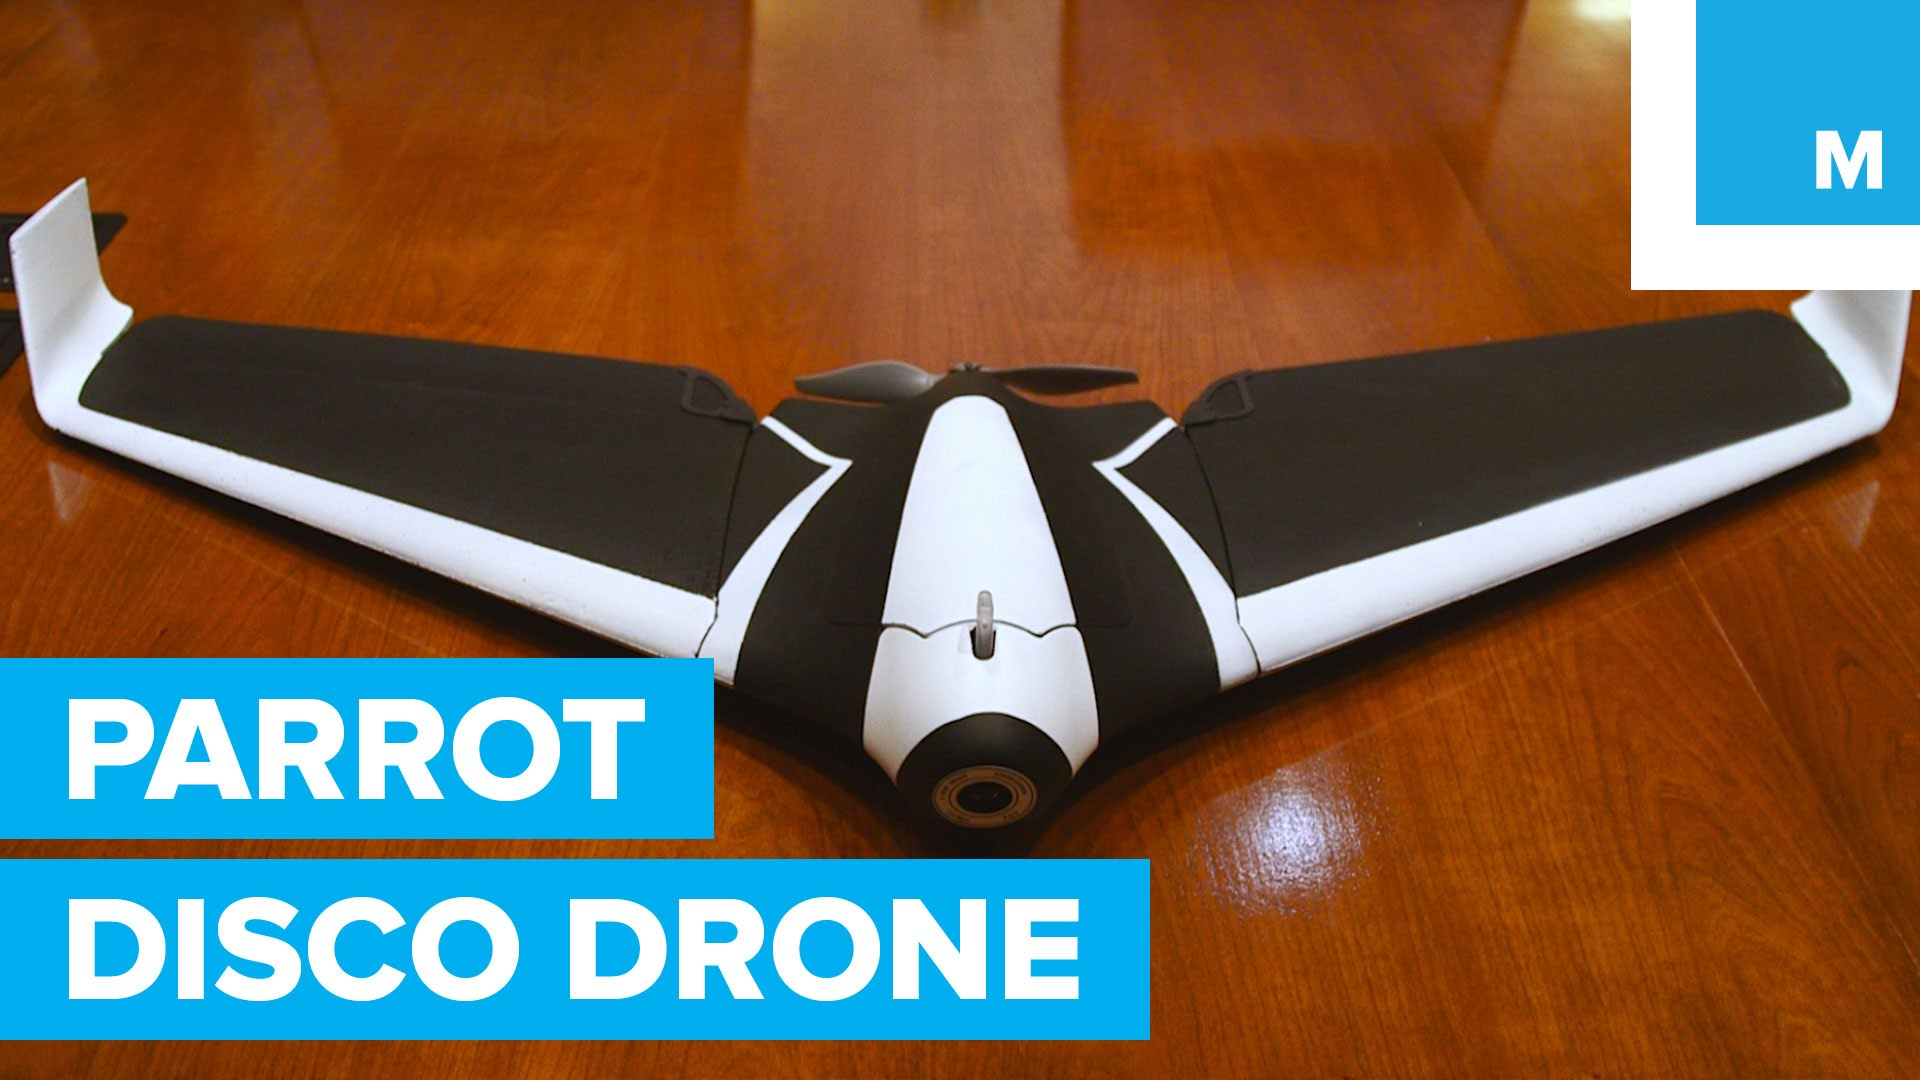 Parrot Disco Drone at CES 2016 is a Massive Wing Drone